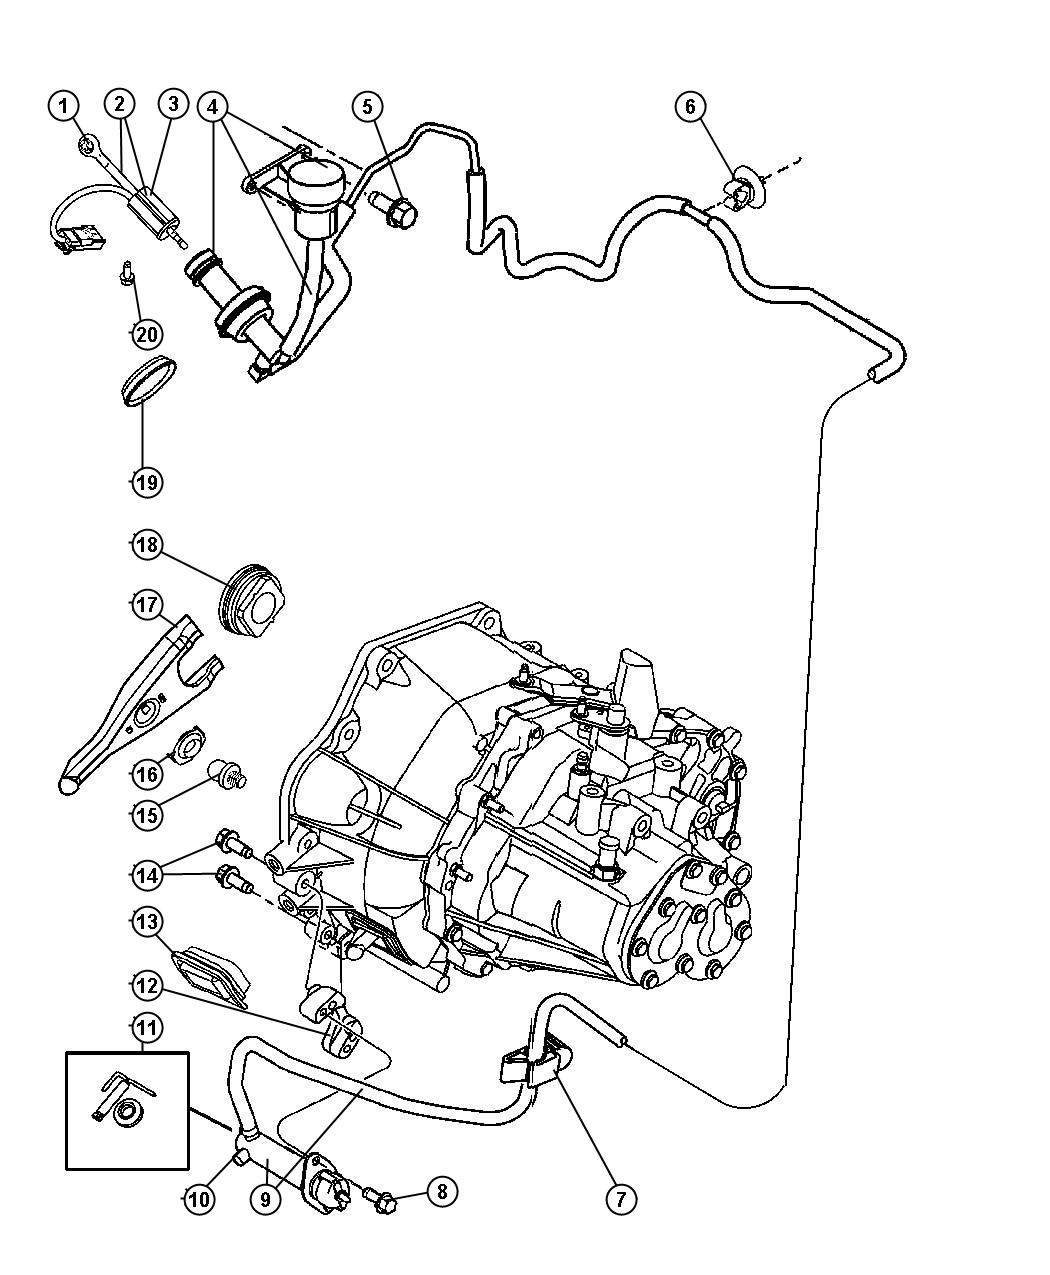 Head Gasket Location in addition Gmc Yukon Front Differential Diagram additionally 2003 Dodge Neon Transmission Diagram moreover  on 2001 ford mustang wiring diagram